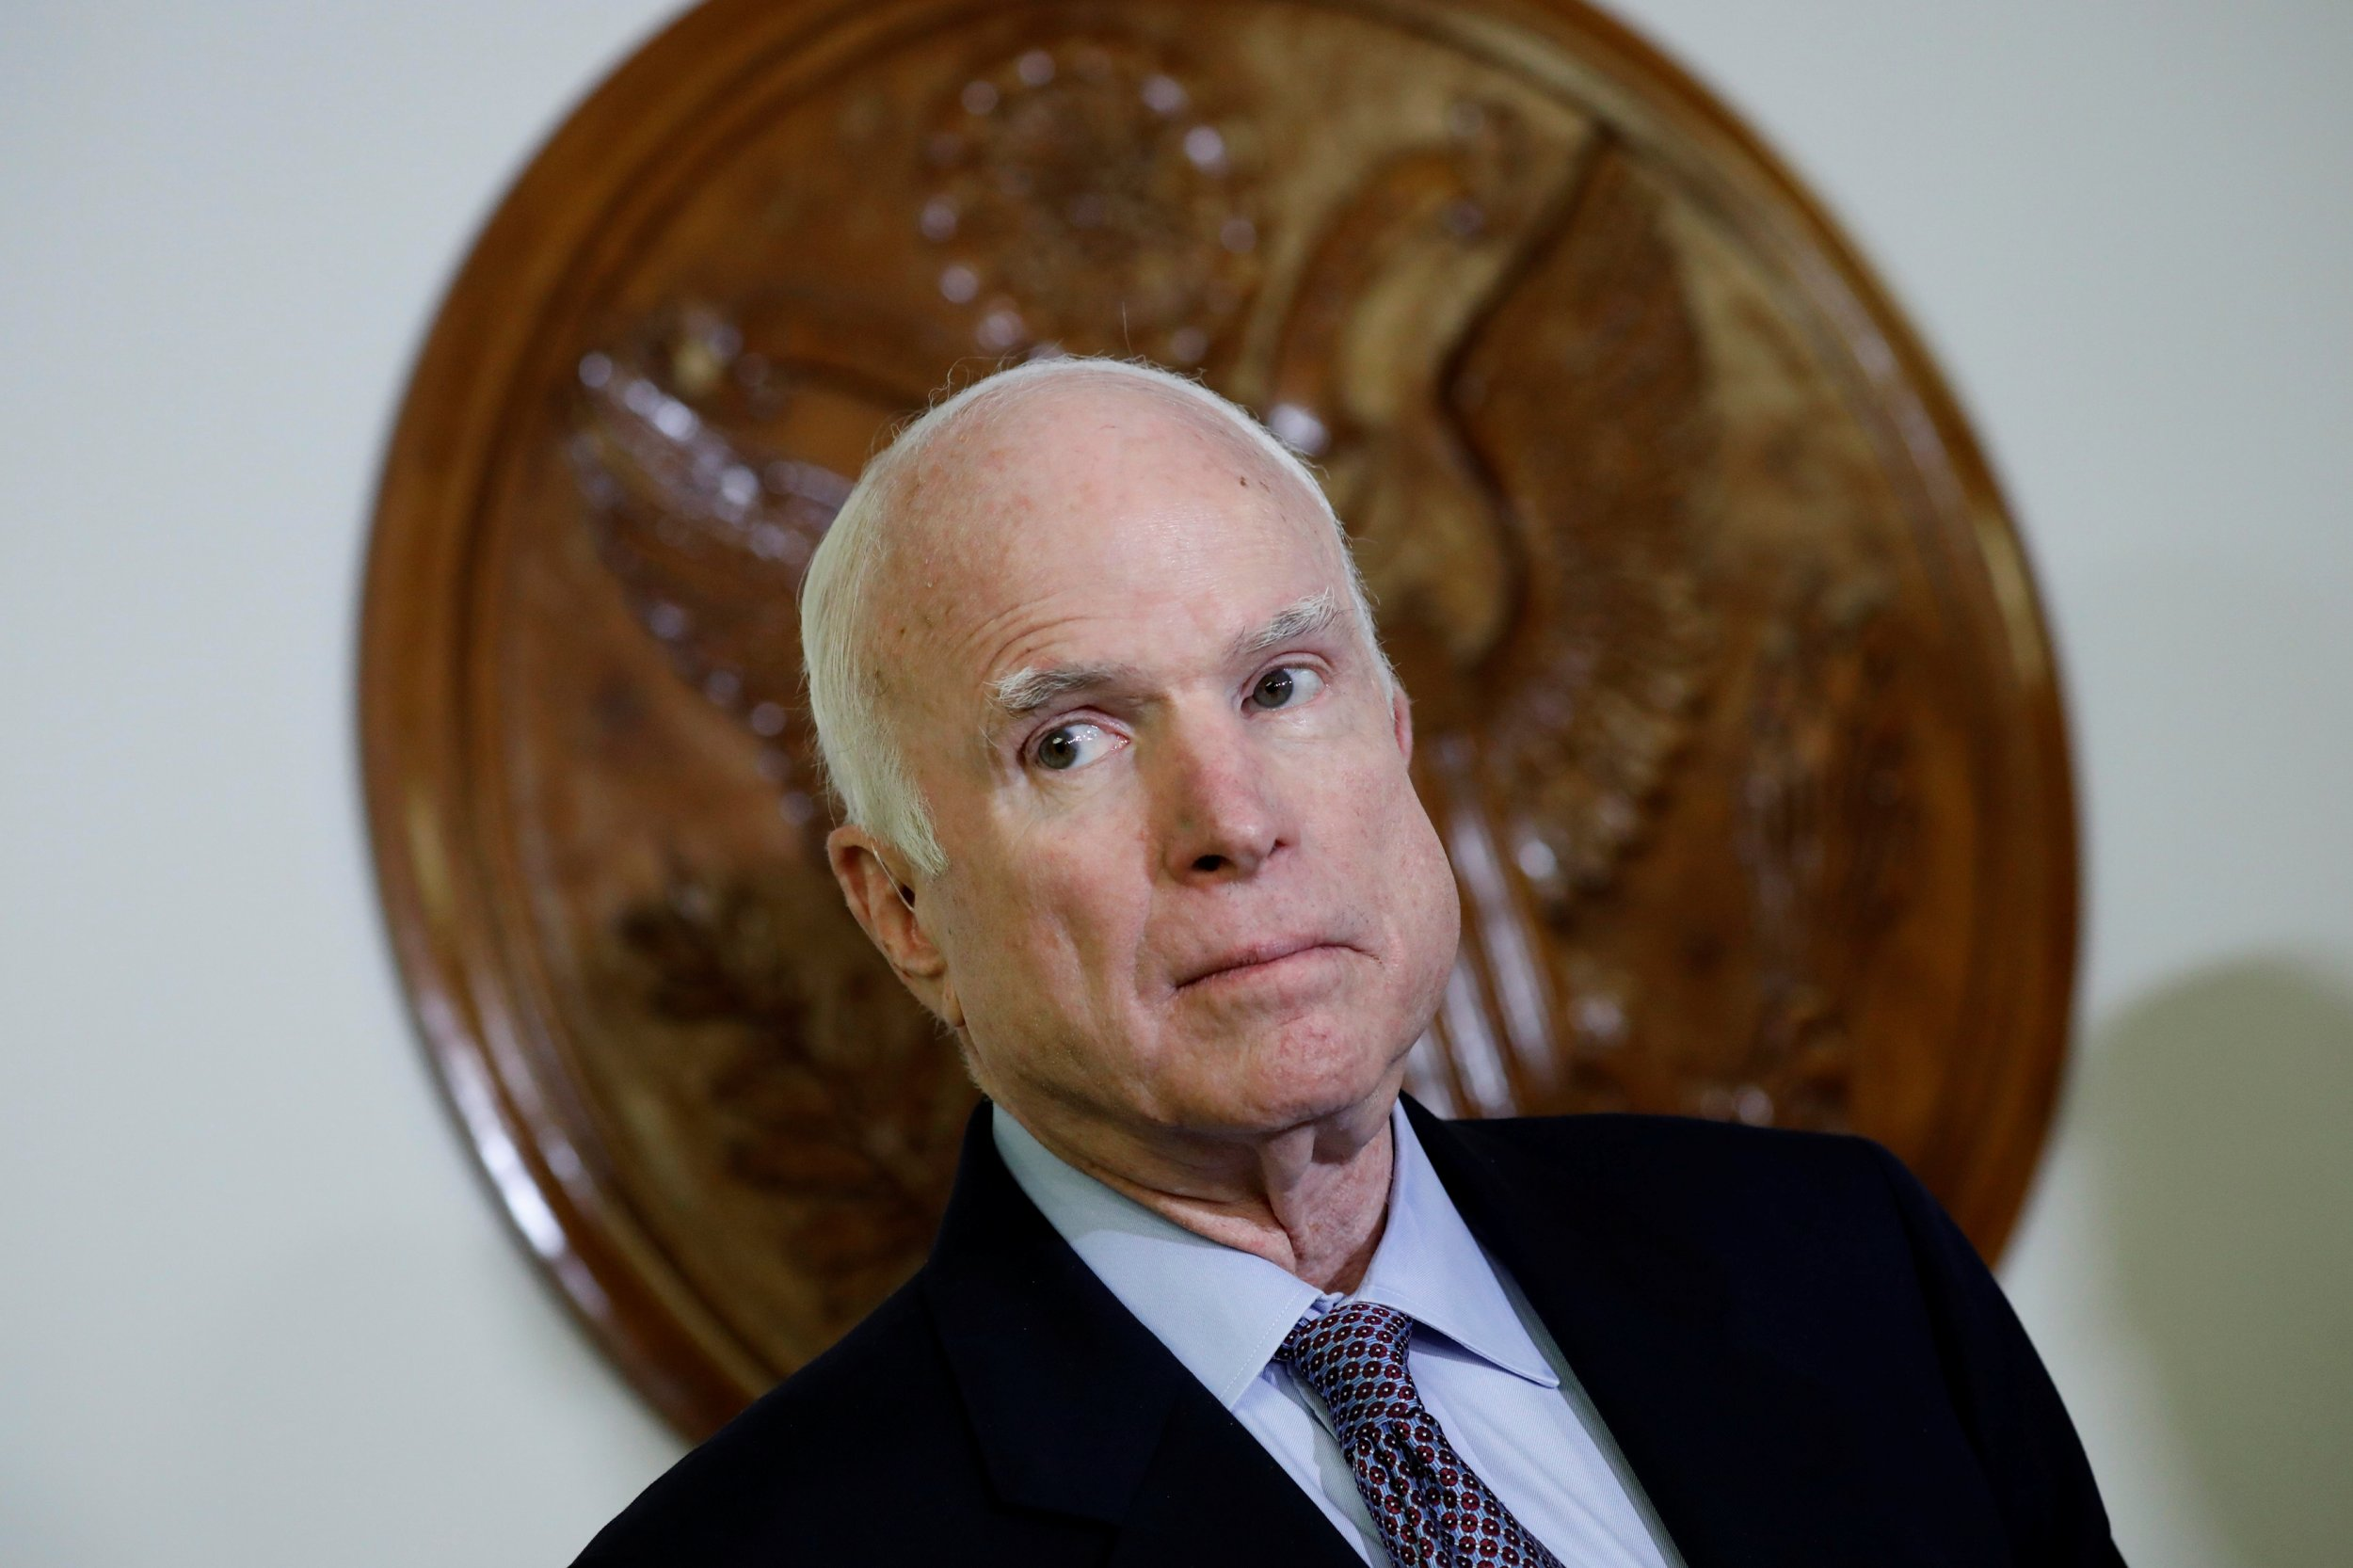 11_27_JohnMcCain